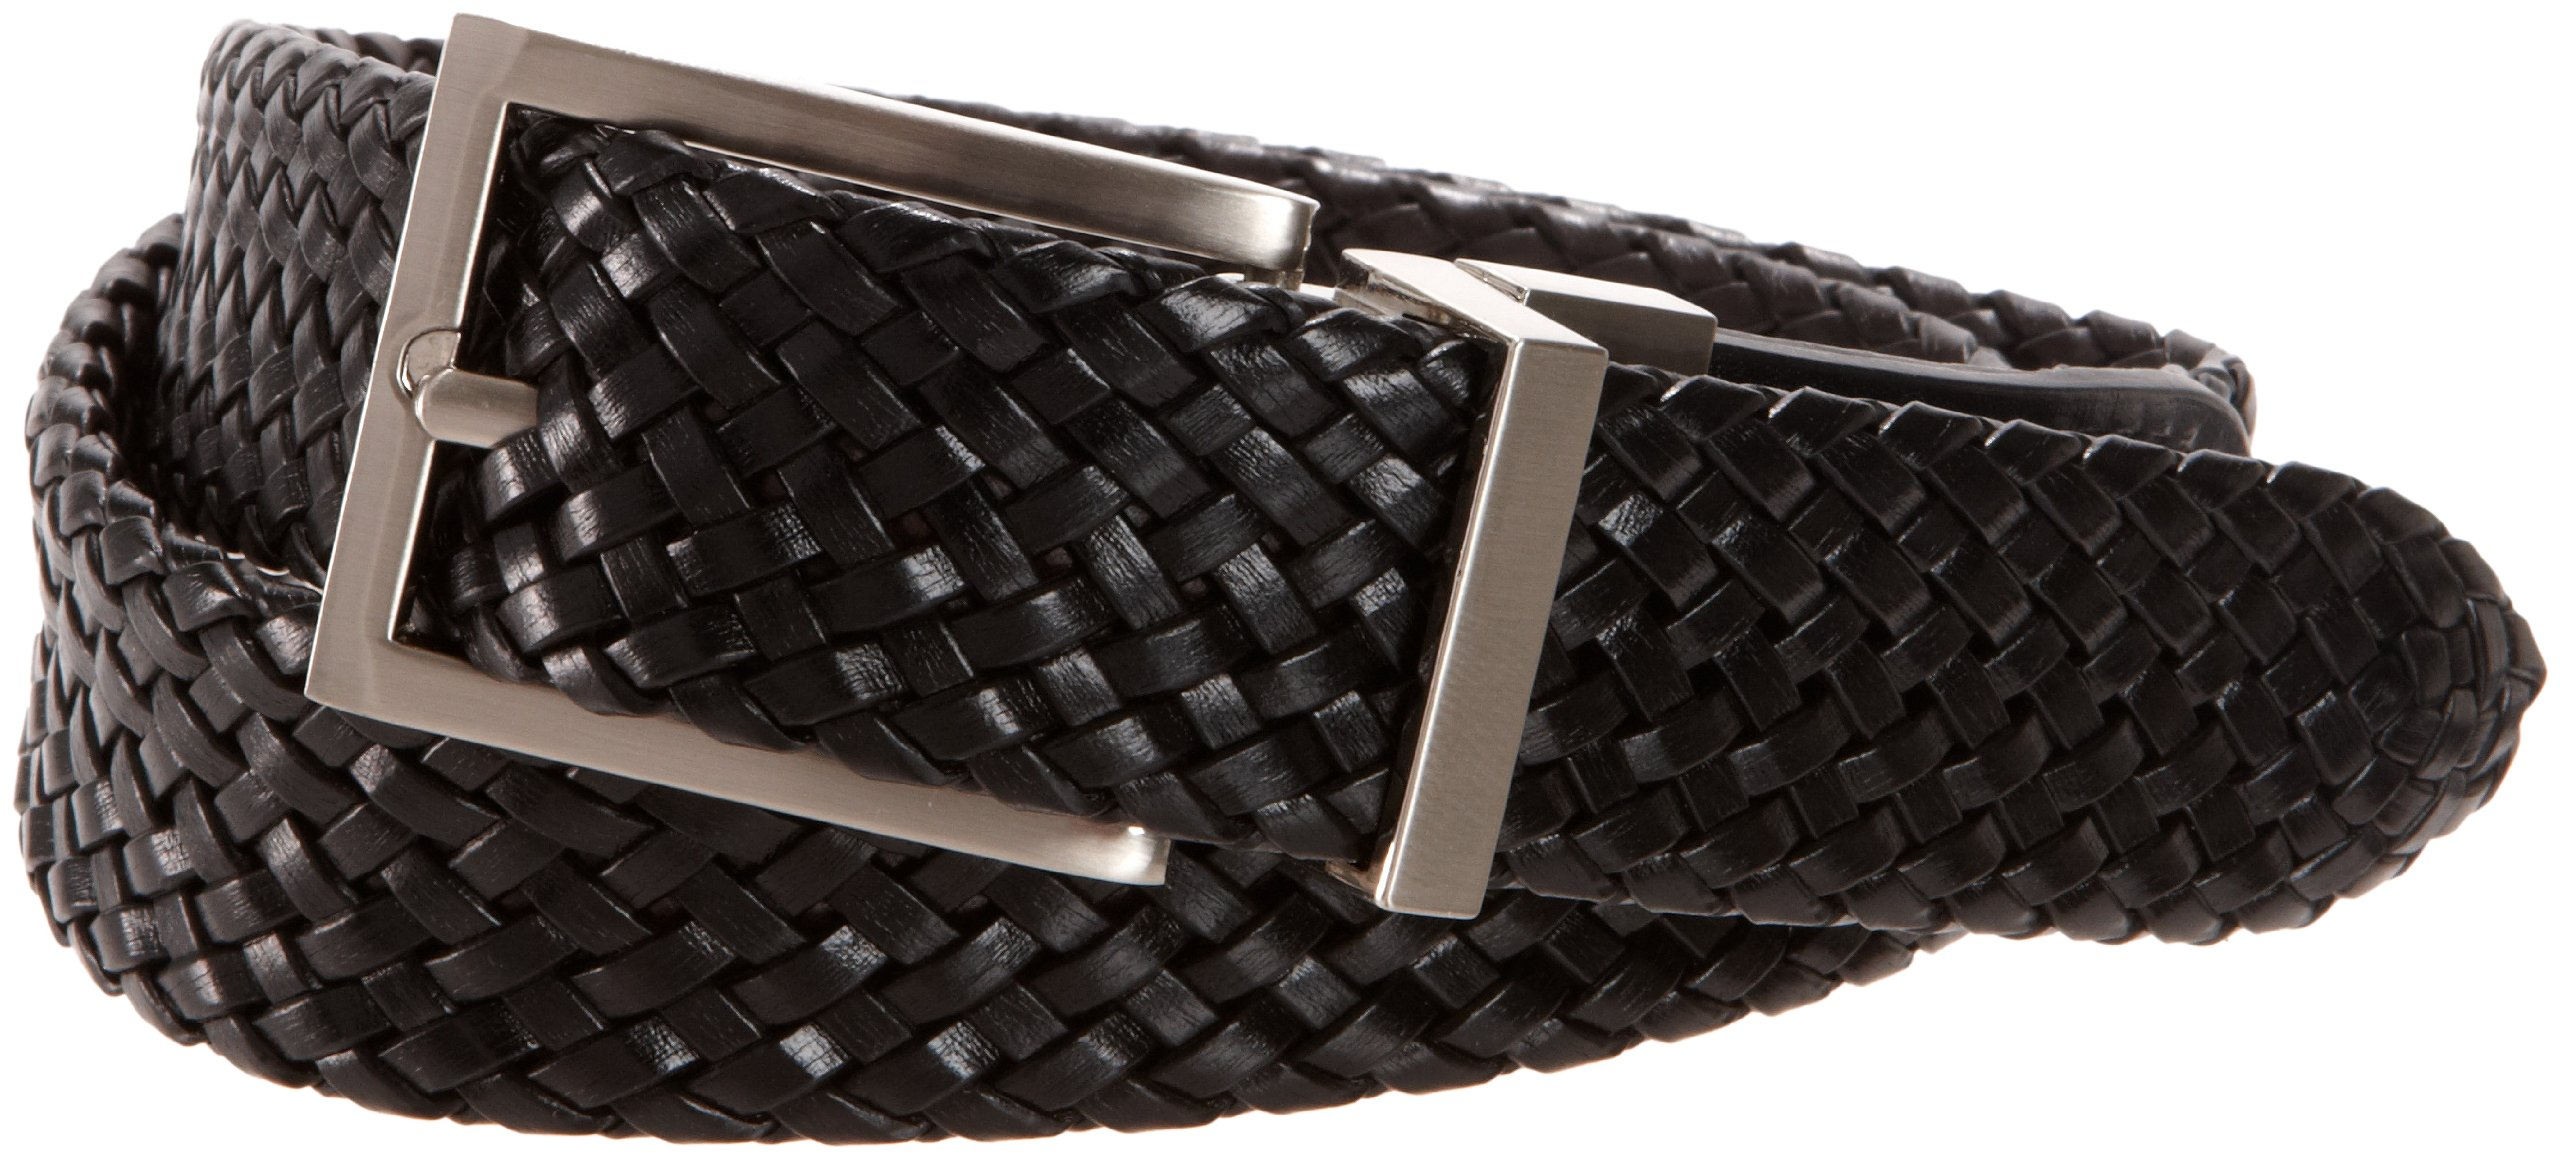 Dockers Big Boys' Reversible Black To Brown Braided Belt With Brushed Nickel Finish Buckle,Brn/Blk,MD (waist 26 in - 28 in)